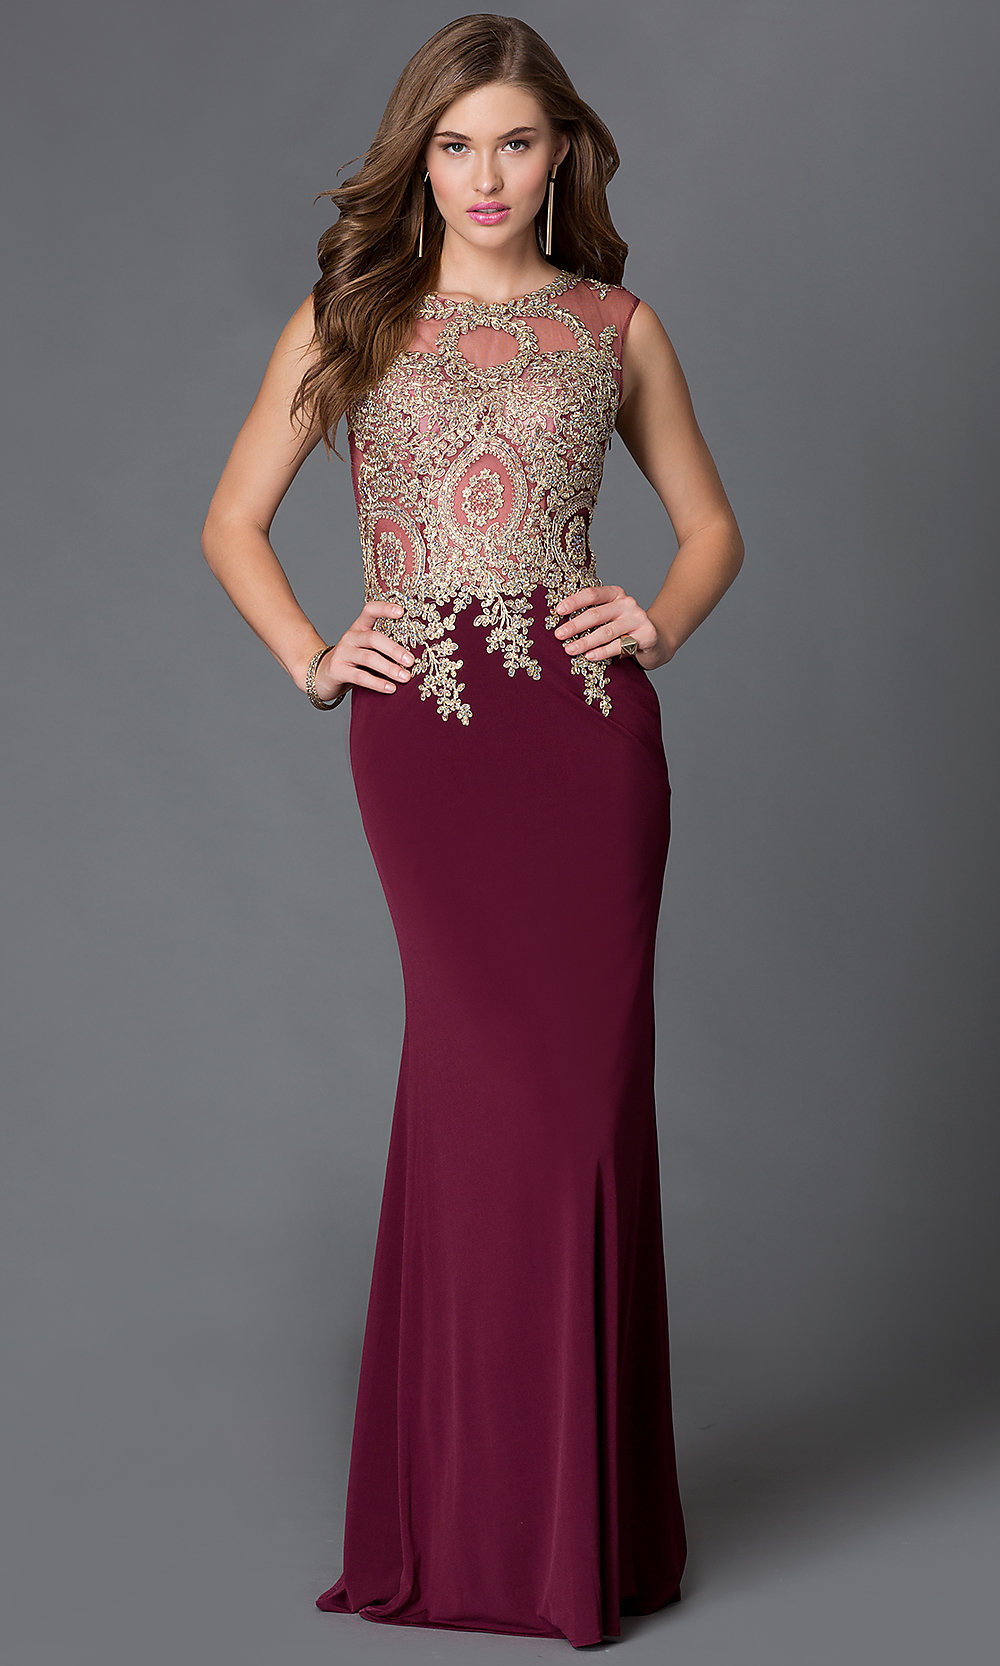 Medium Long Prom Dresses